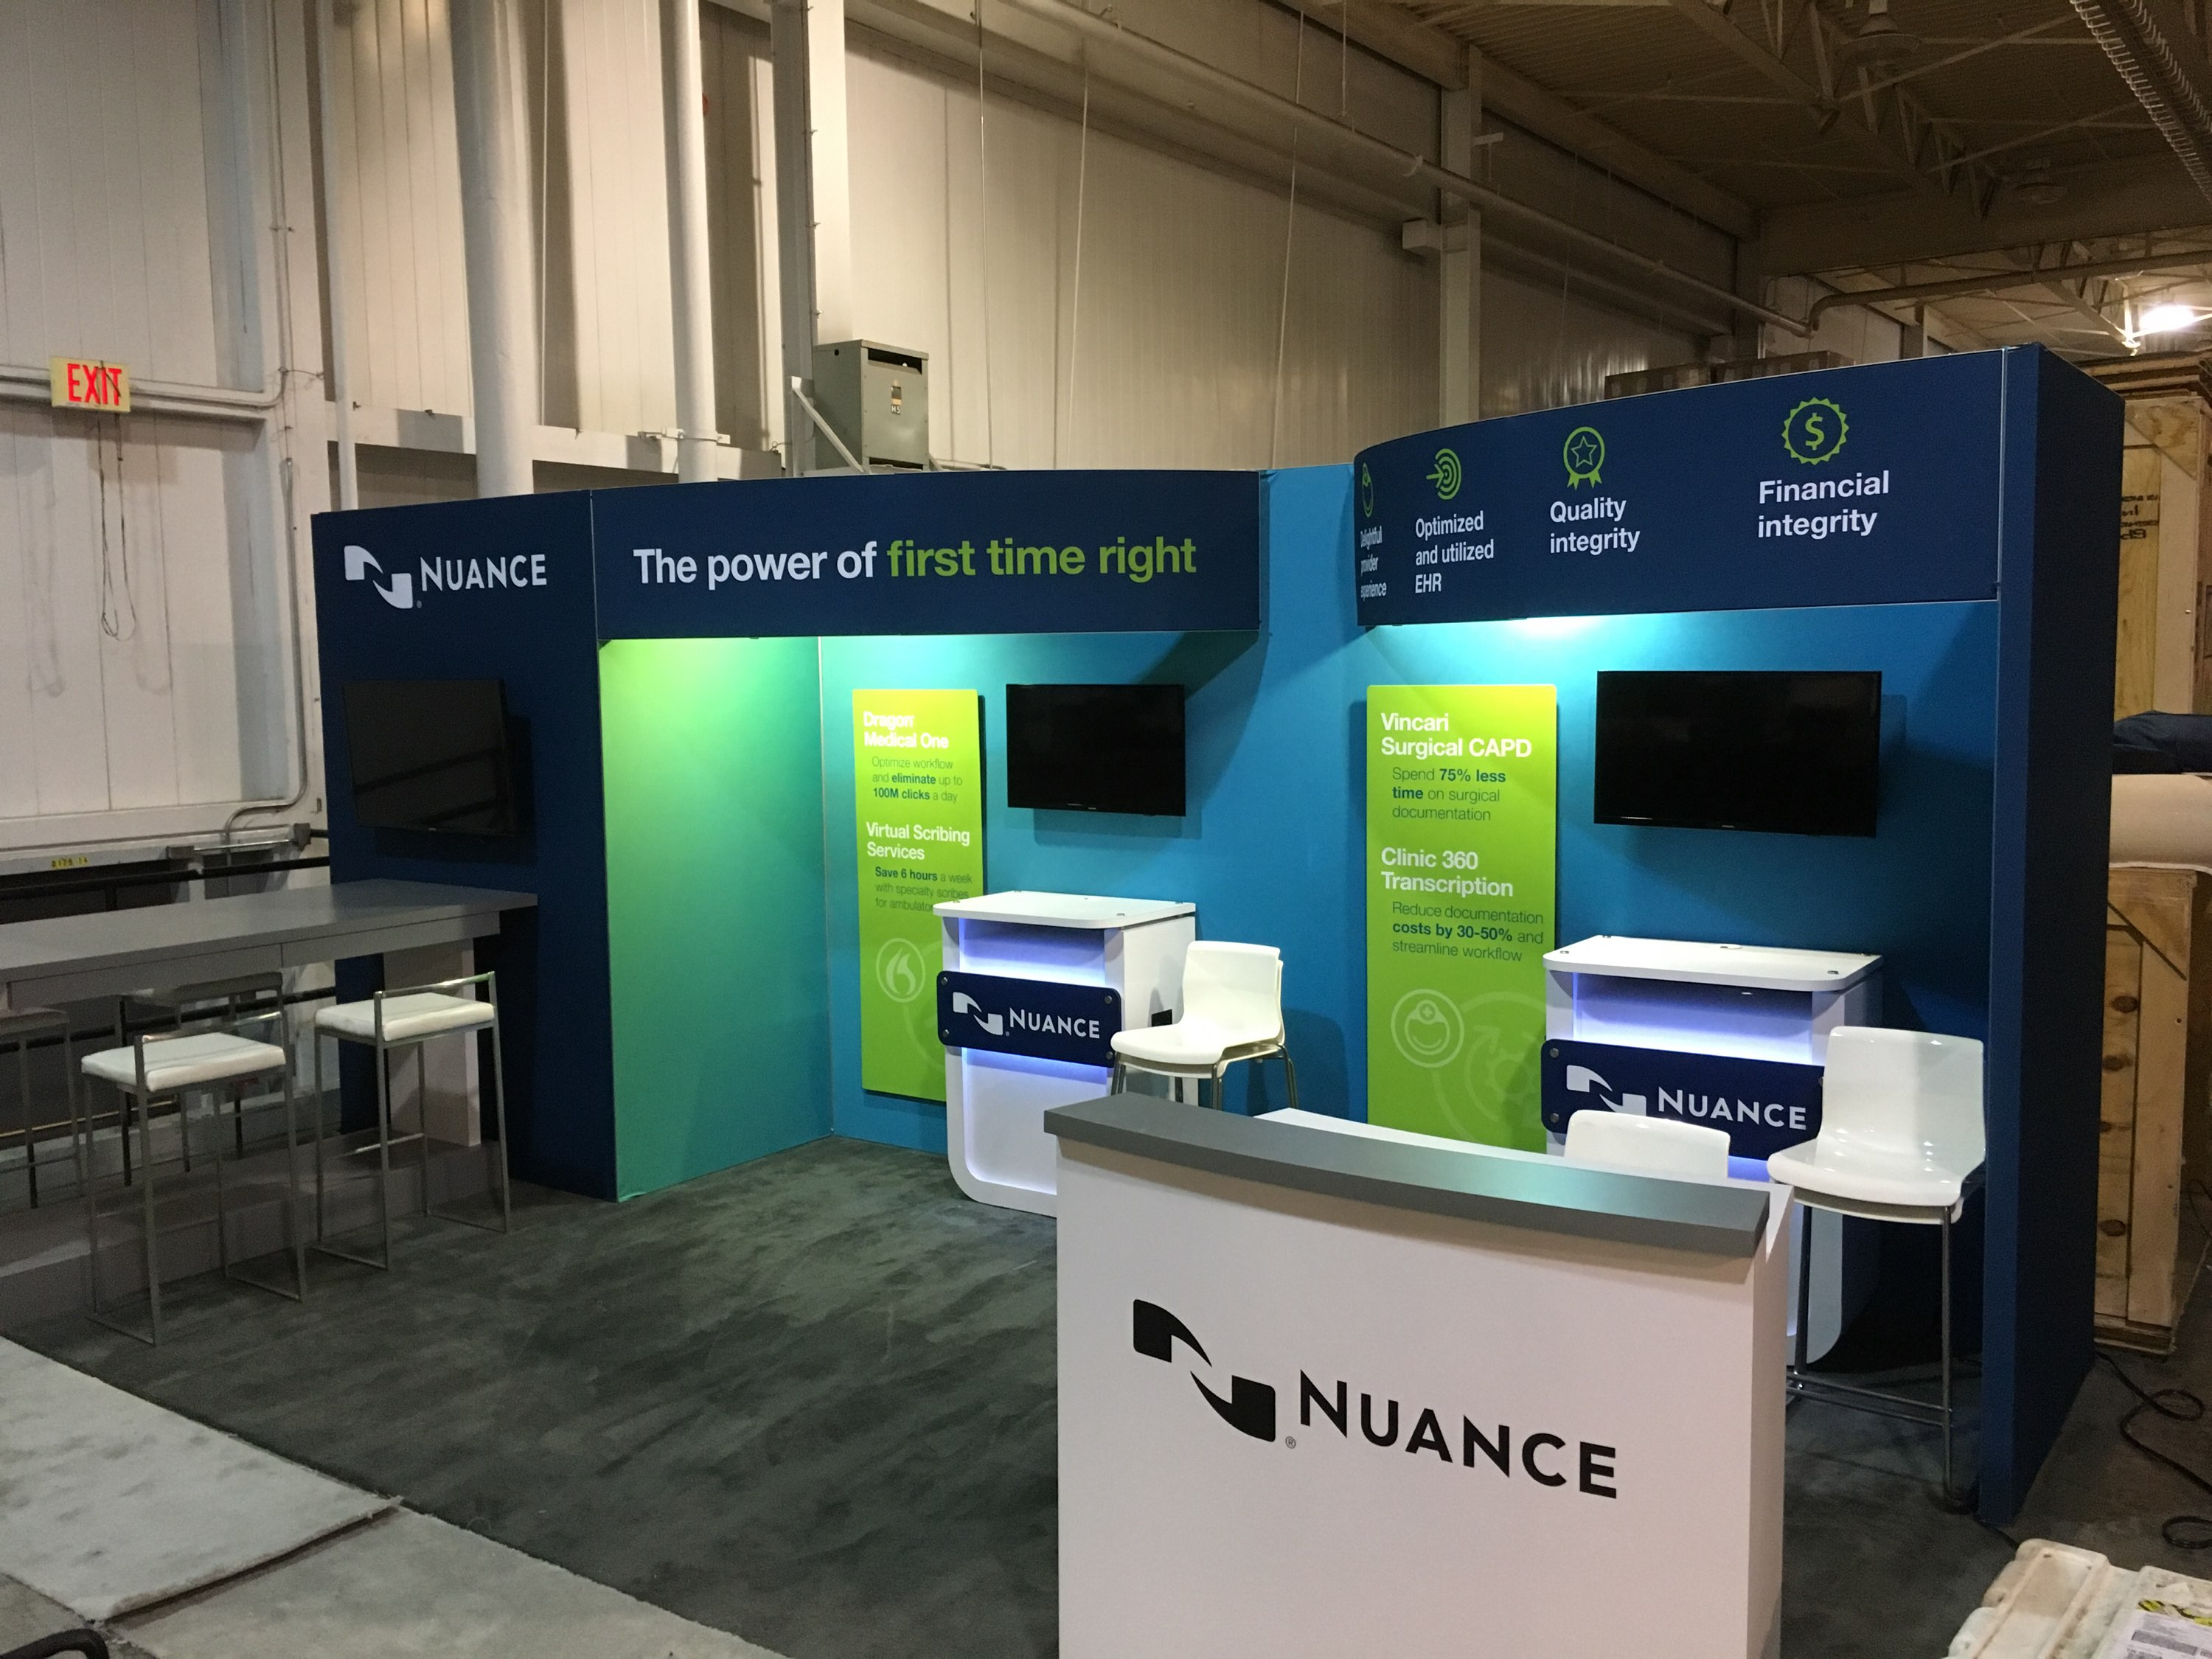 Nuance Trade Show Booth Displays